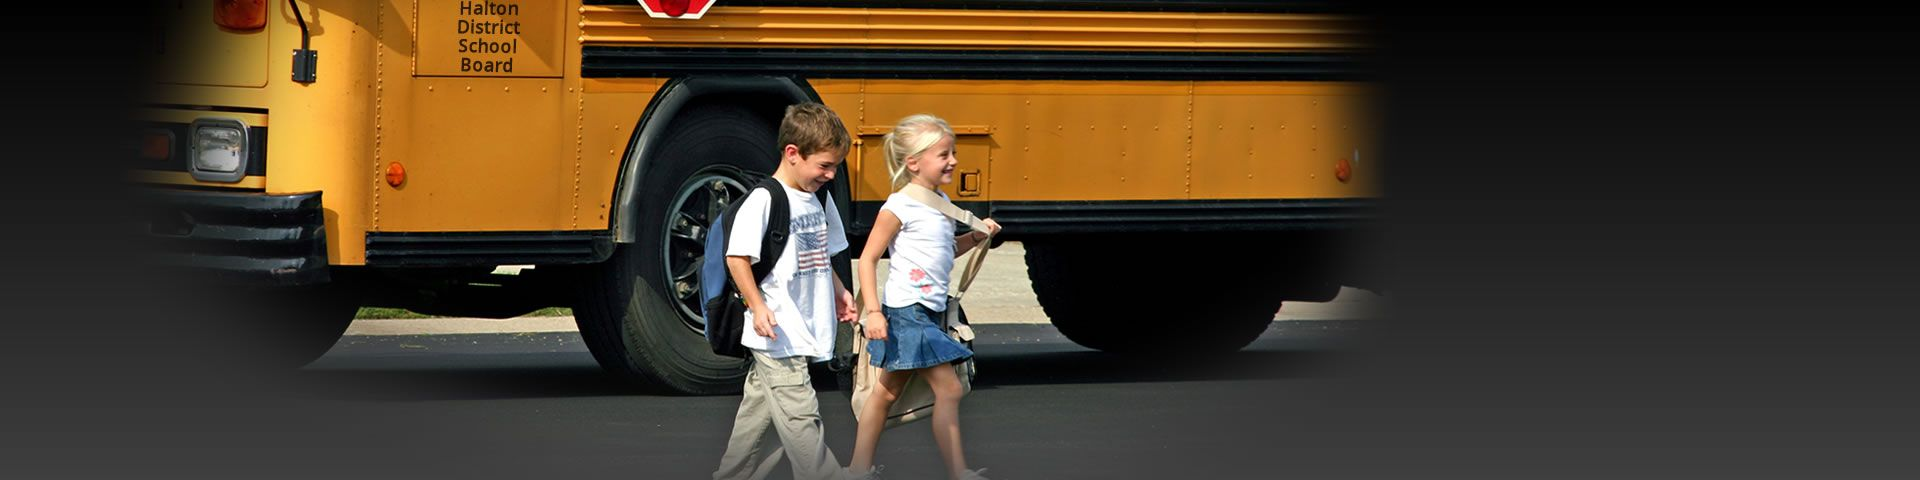 Kids getting off school bus